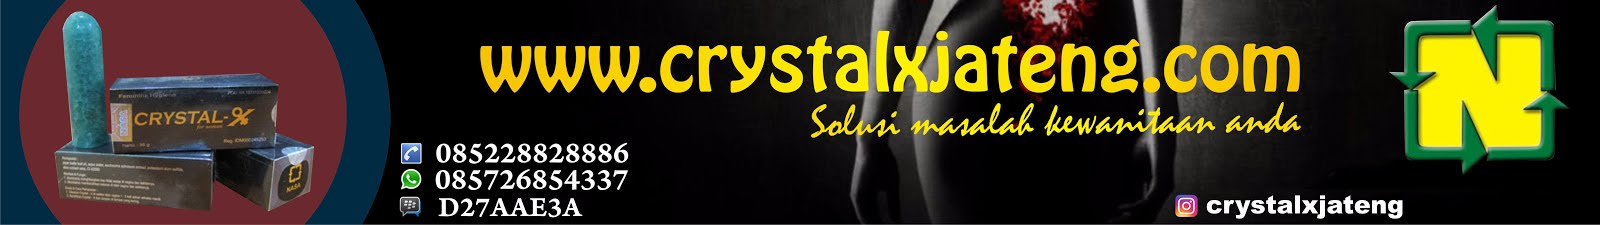 Crystal X Natural Nusantara